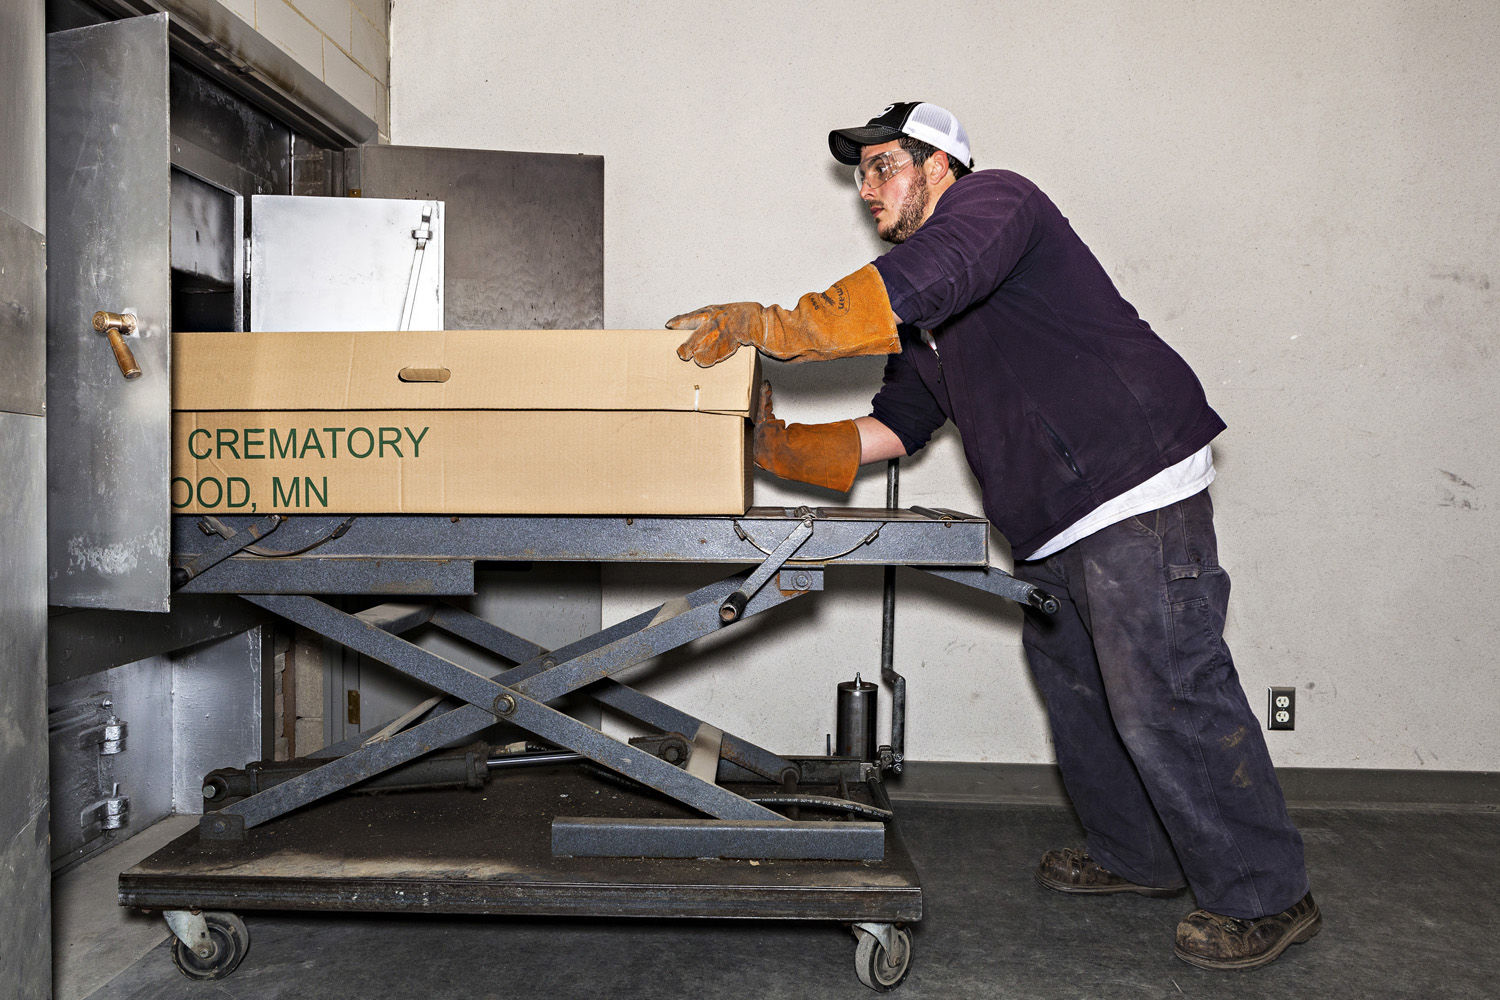 Roy Quinn, crematory operator at Forest Lawn Memorial, places a body into their fire-based cremation oven.